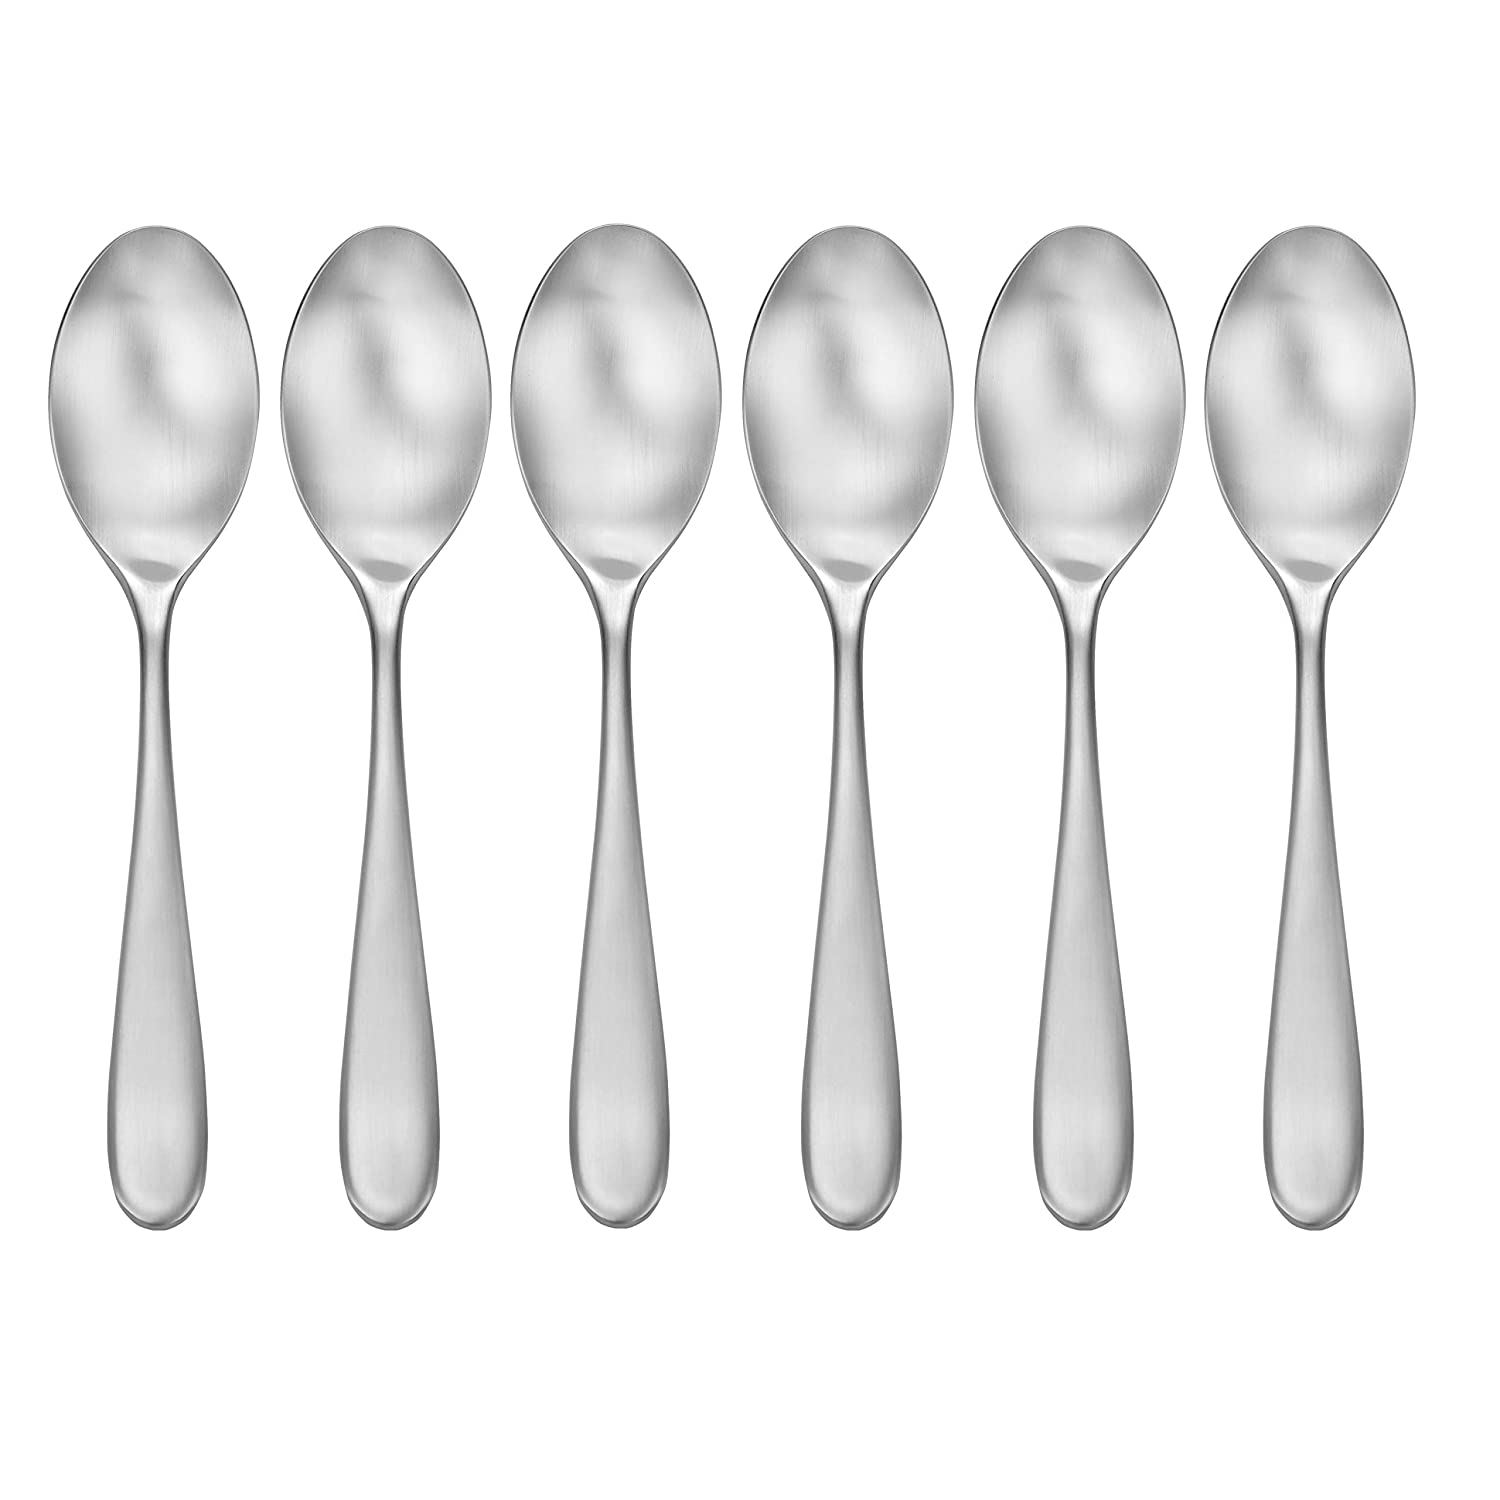 Cocktail Forks Craftkitchen Open Stock Stainless Steel Satin Classic Flatware Sets Forks Kitchen Dining Swl13562 Nl